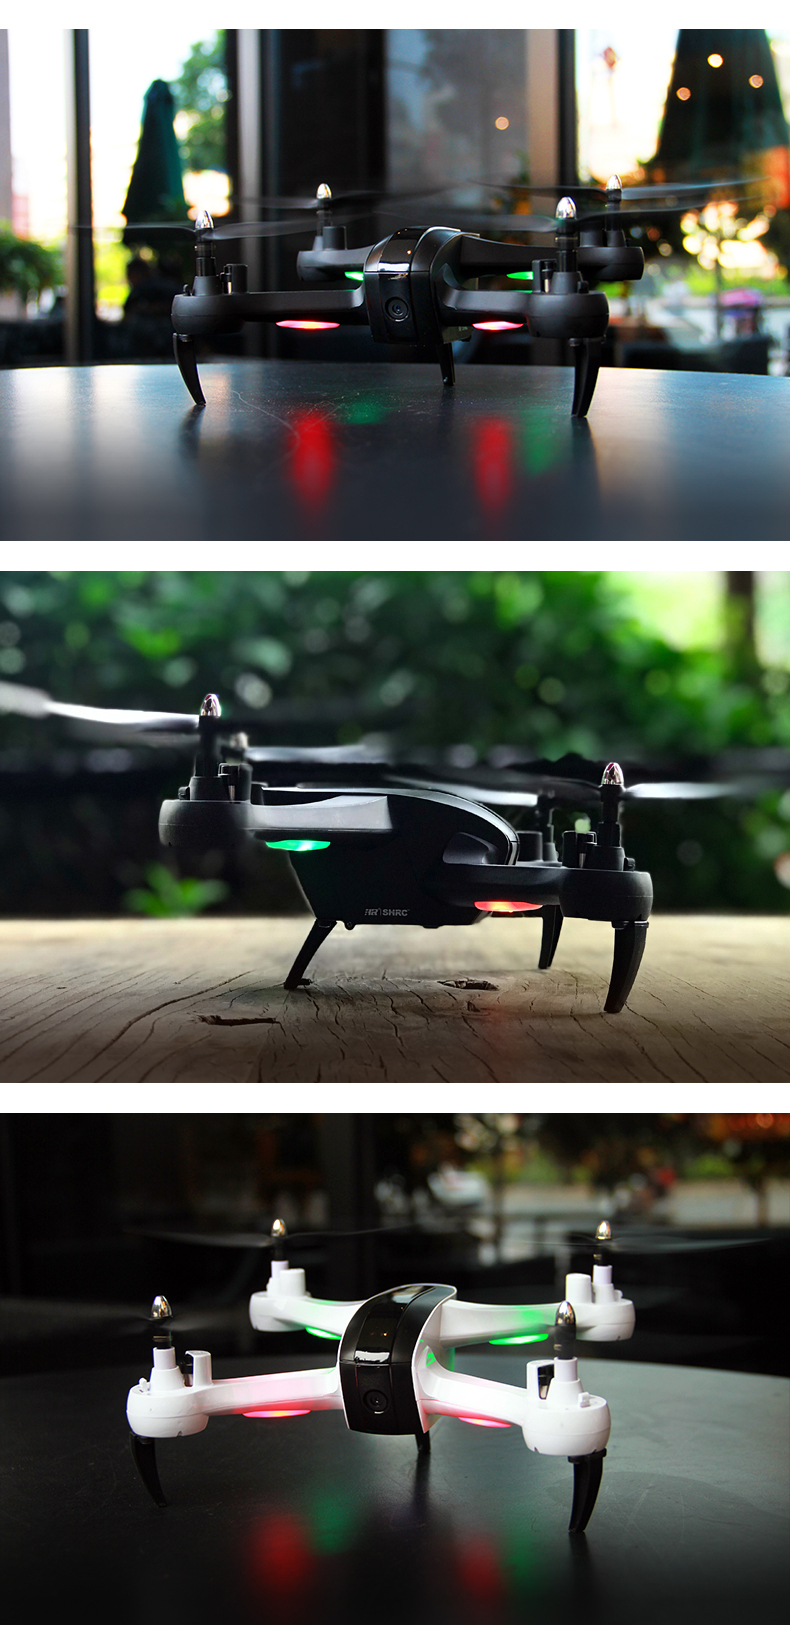 HR SH7 WIFI FPV With 1080P HD Camera 18mins Flight Time Altitude Hold Mode RC Drone Quadcopter RTF